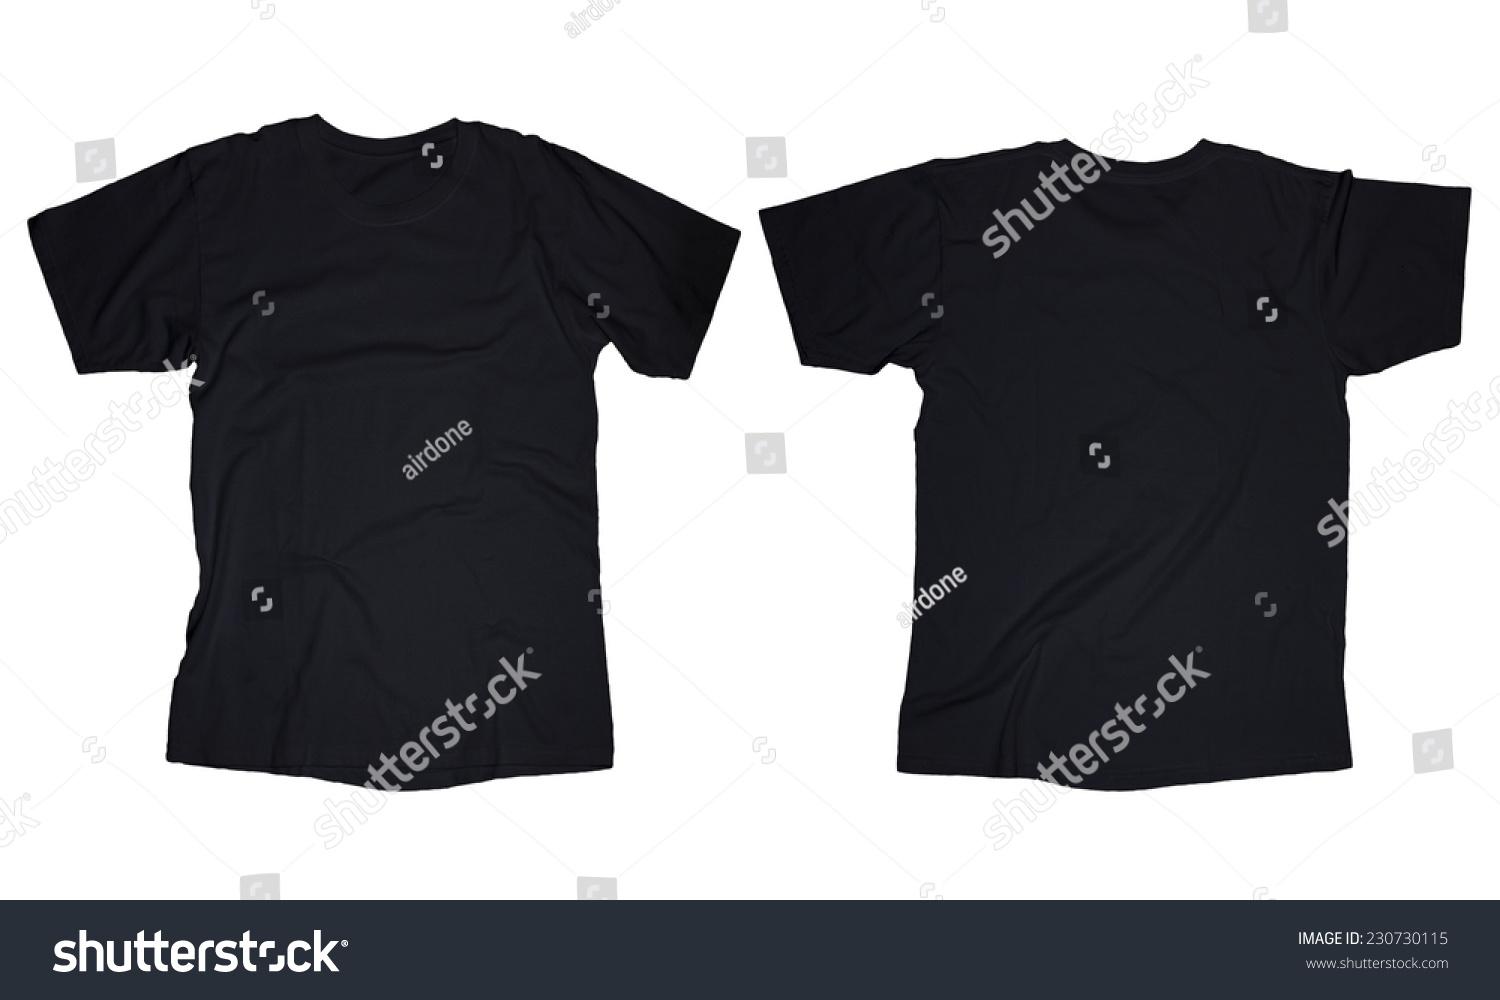 Blank black t shirt front and back - Wrinkled Blank Black T Shirt Template Front And Back Design Isolated On White